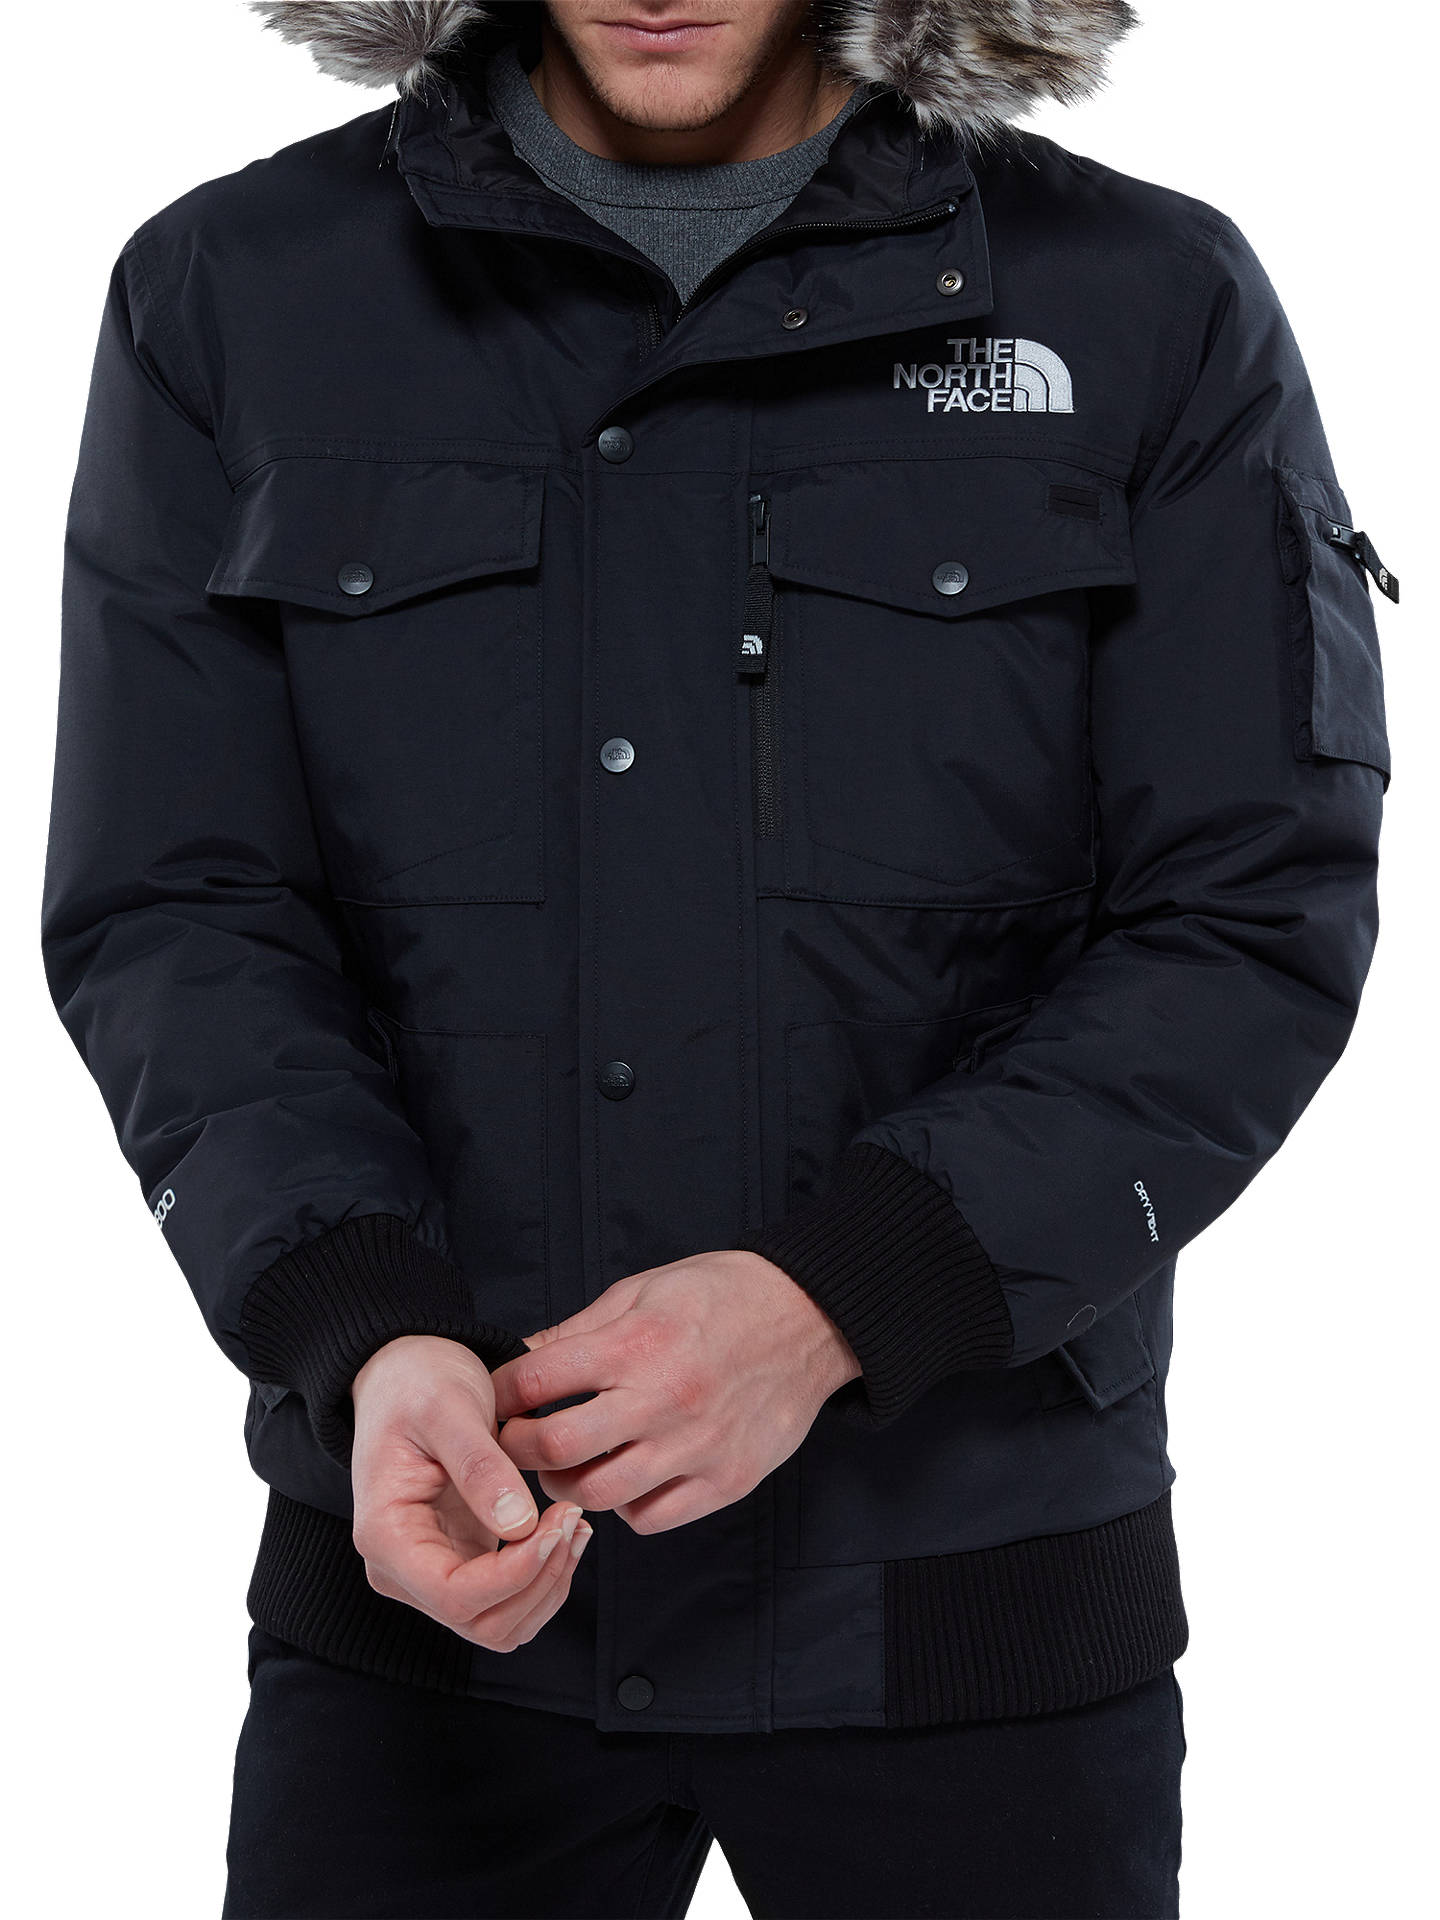 Buy The North Face Gotham Waterproof Men's Jacket, Black, S Online at johnlewis.com